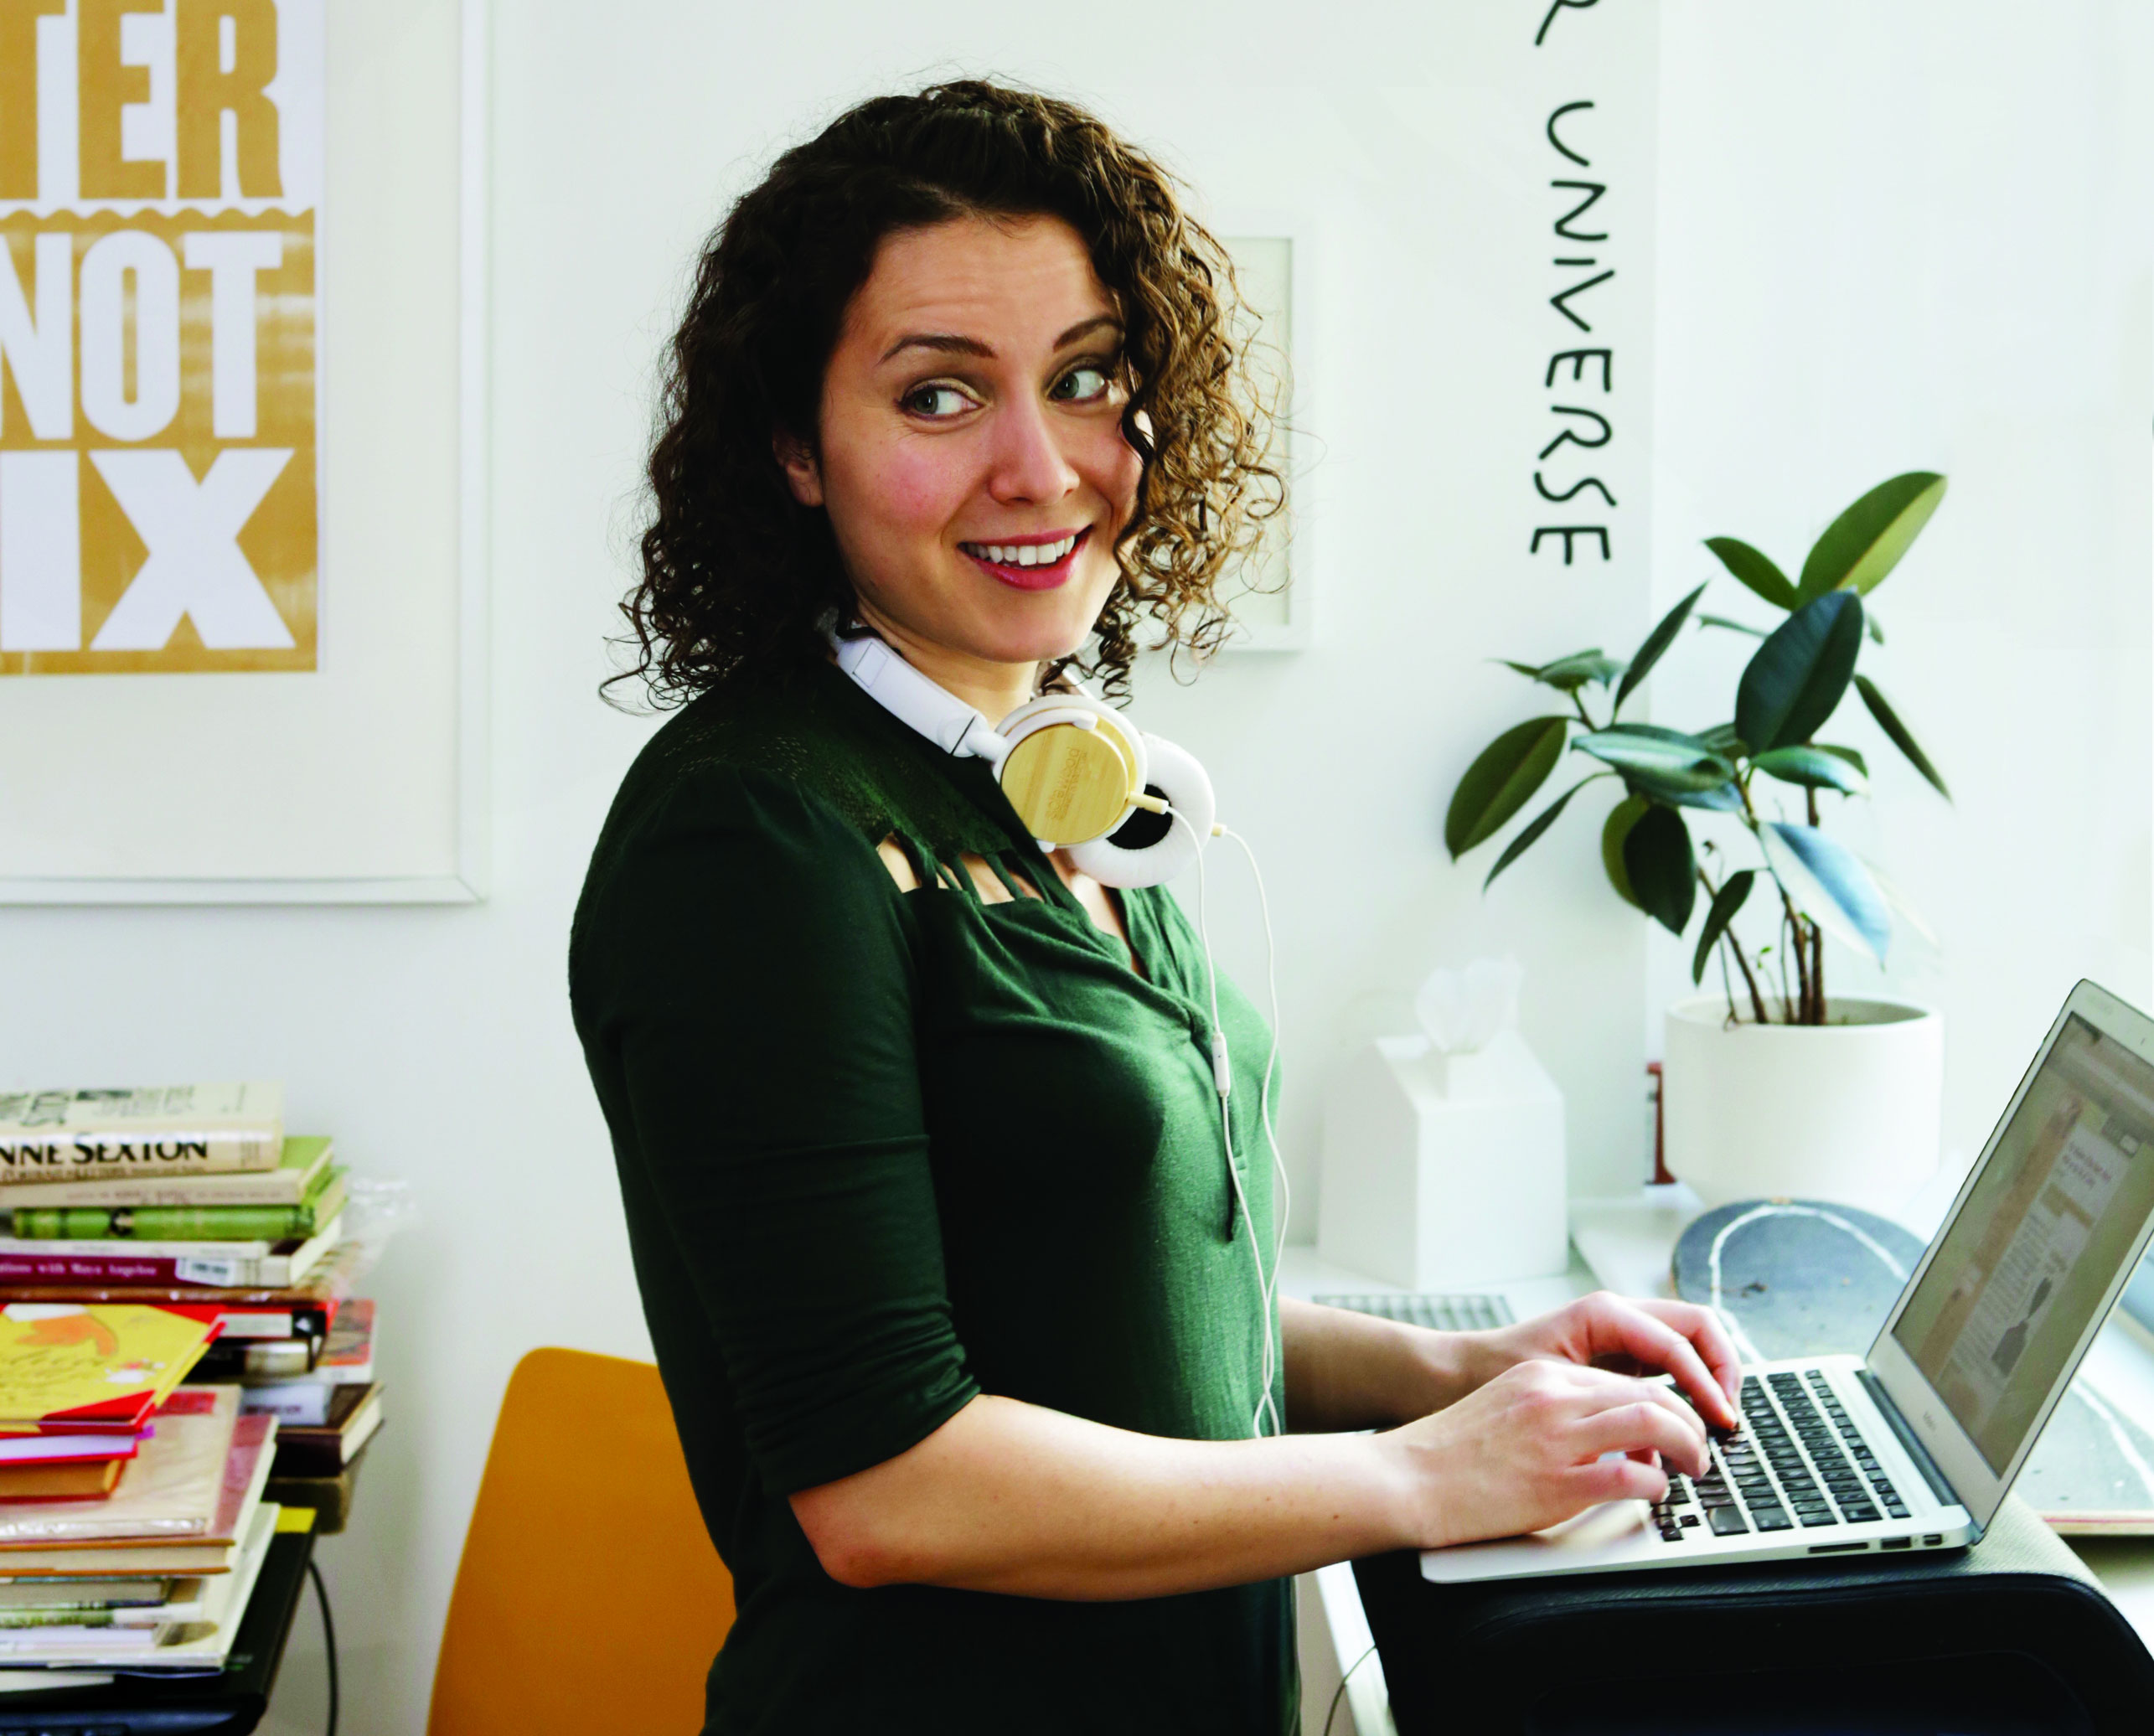 maria popova cartographer of meaning in a digital age on being